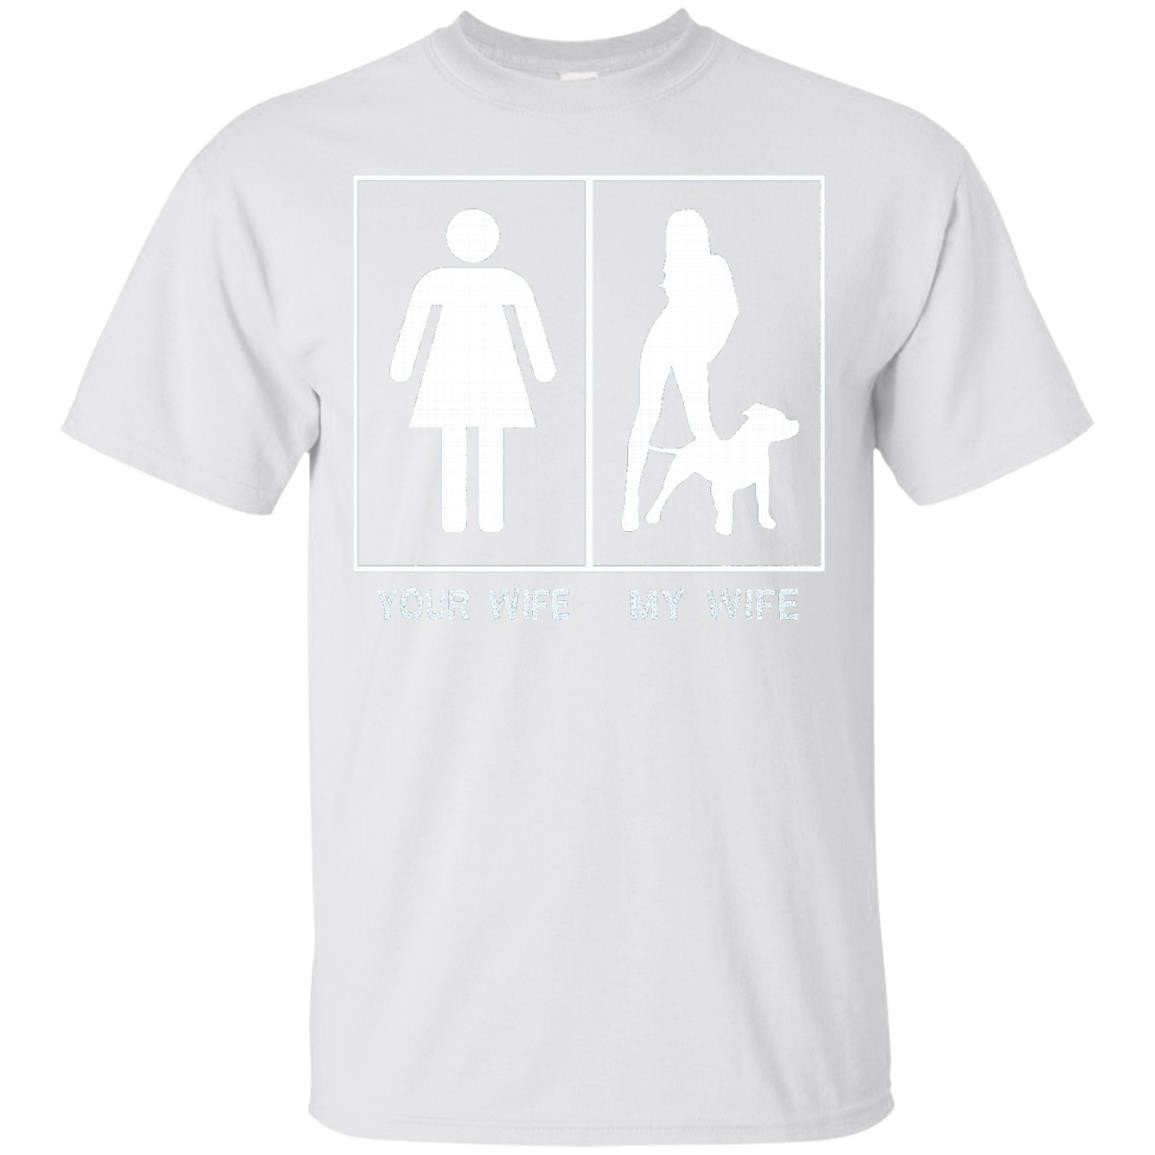 Your Wife My Wife pitbull T-shirts - T-Shirt